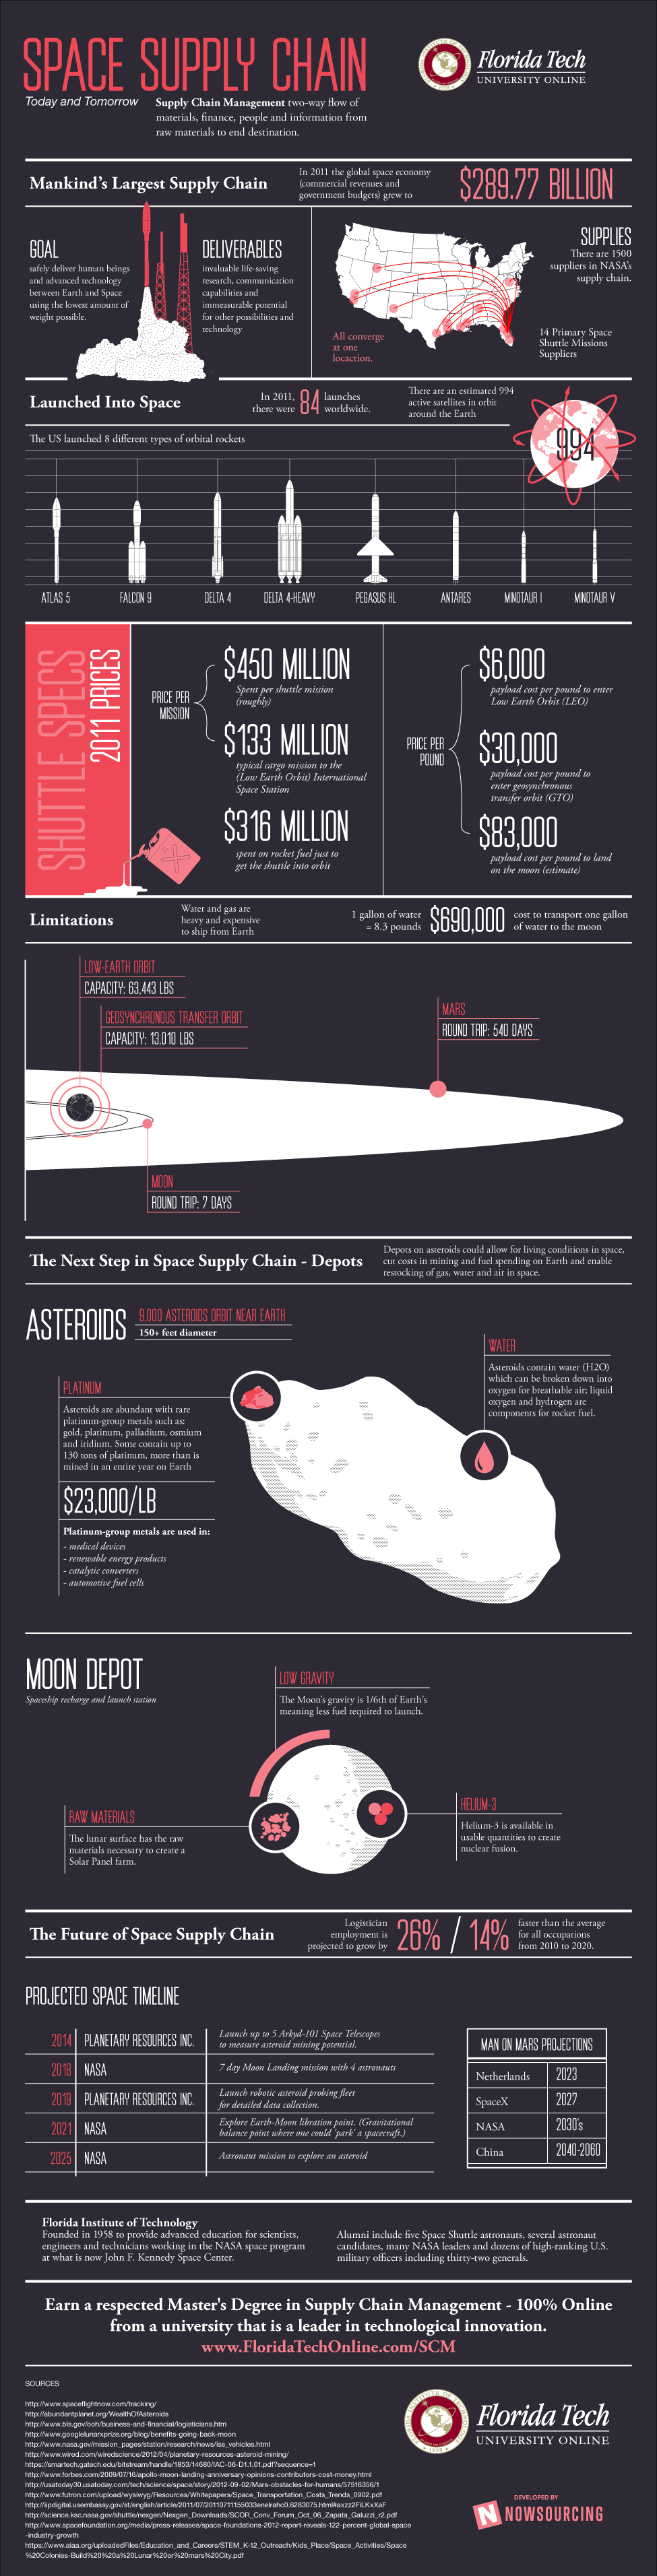 Fla. technology institute's space supply chain managment infographic